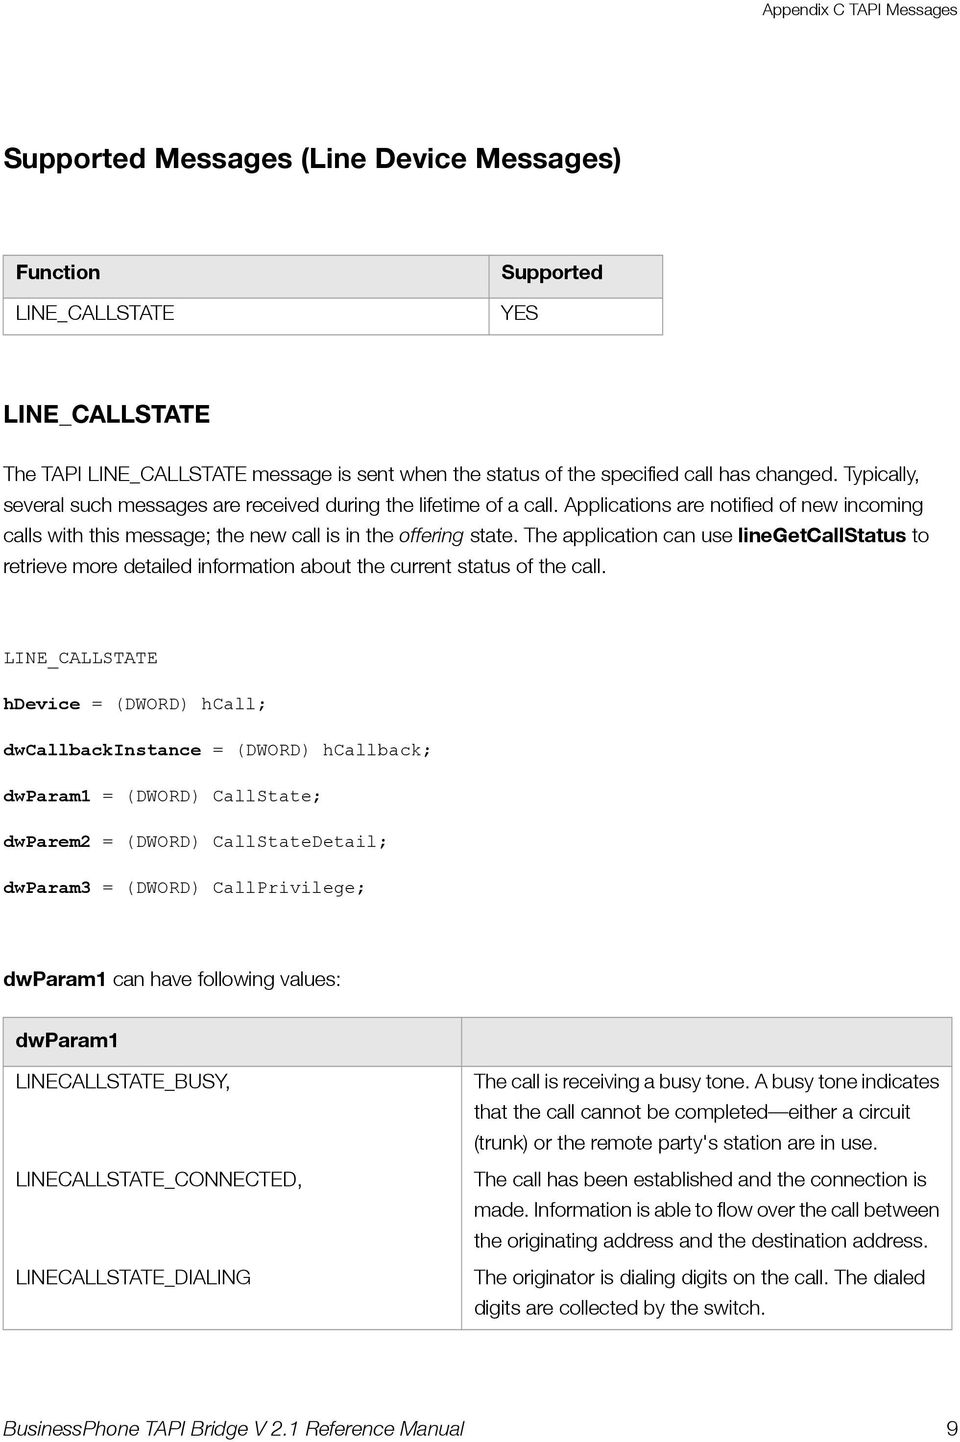 The application can use linegetcallstatus to retrieve more detailed information about the current status of the call.